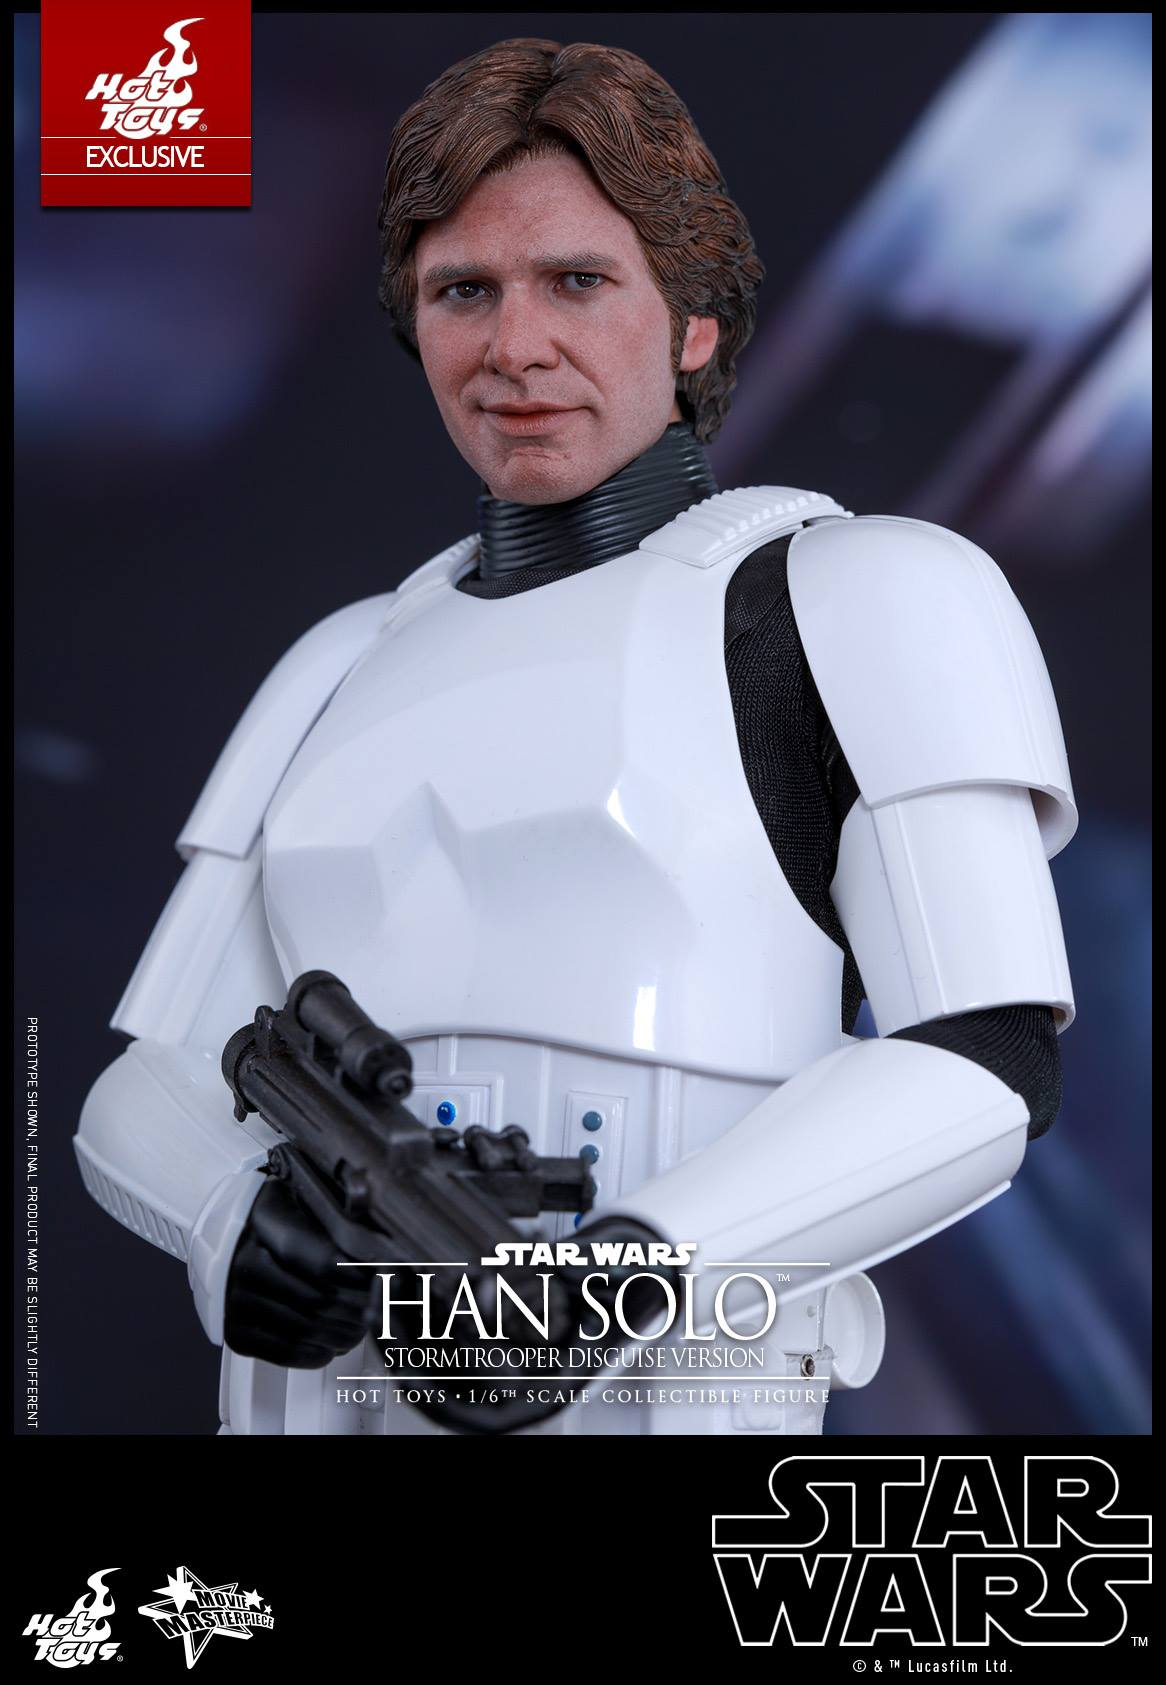 Star Wars Han Solo In Stormtrooper Disguise By Hot Toys